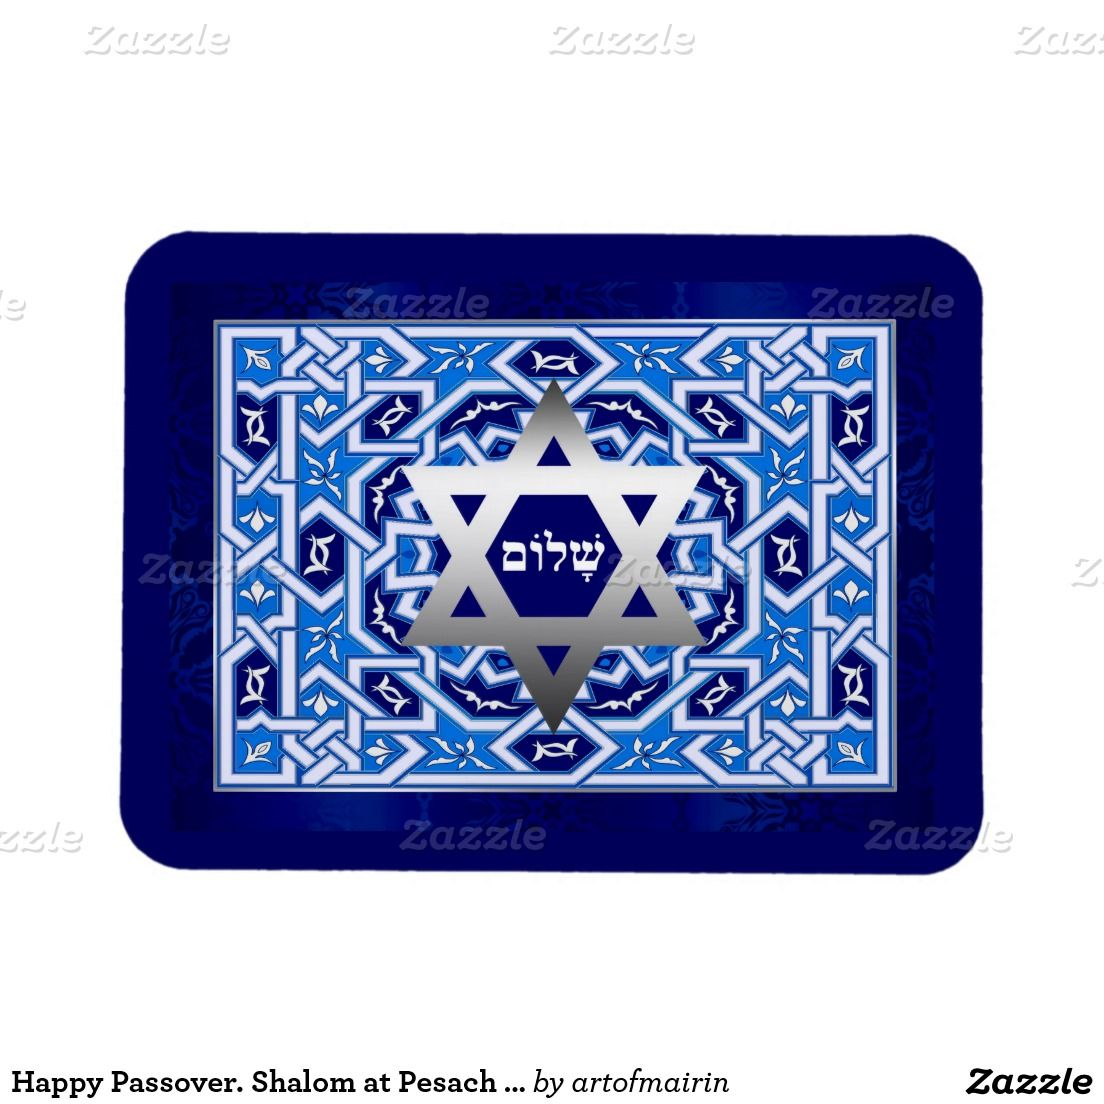 Happy Passover. Shalom at Pesach Gift Magnets  Zazzle.com